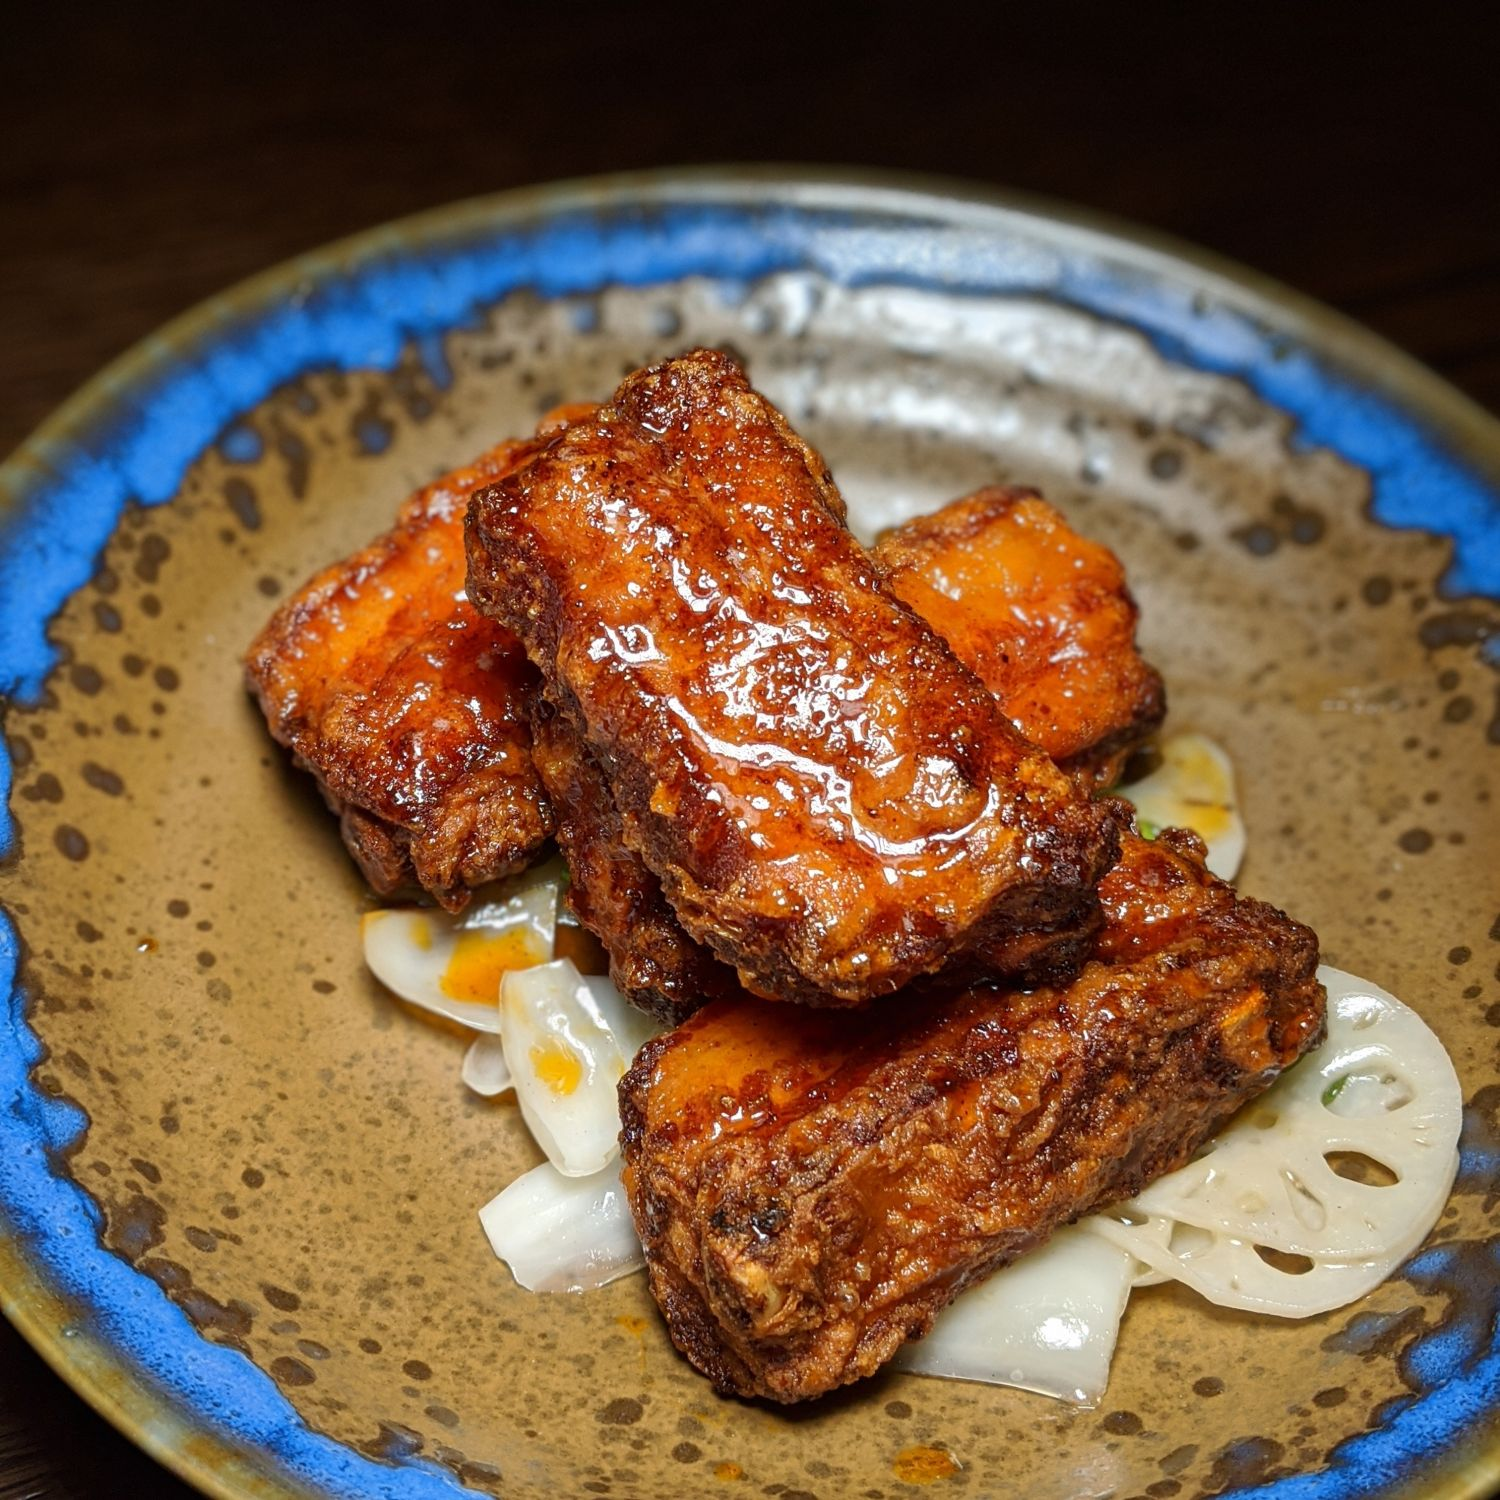 mott 32 singapore Crispy Pork Rib, Red Beancurd